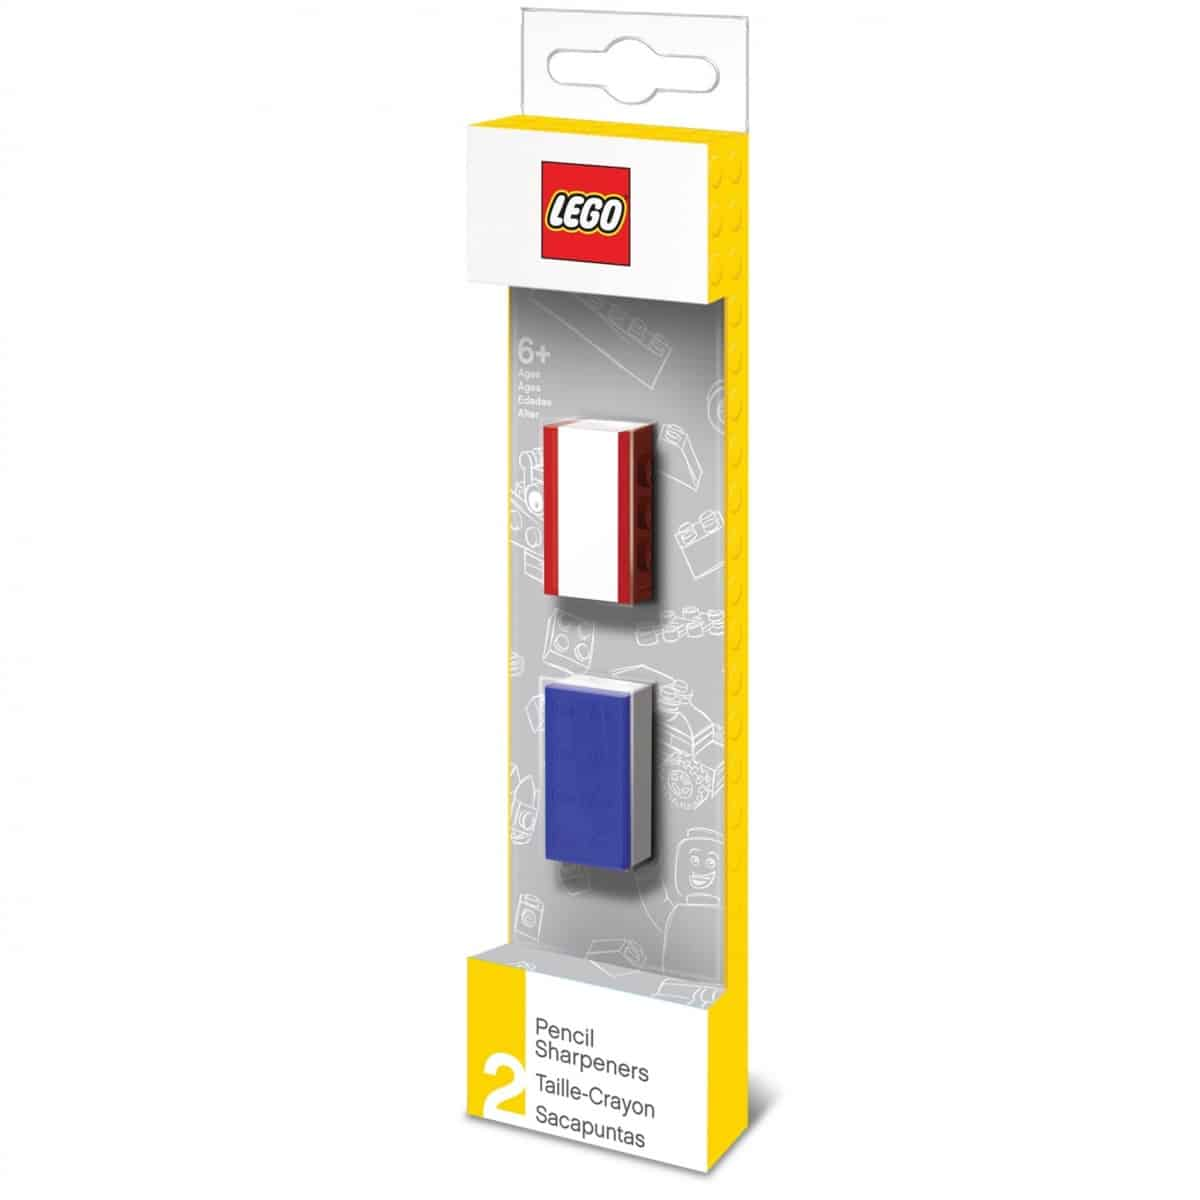 lego 5005112 pencil sharpeners scaled